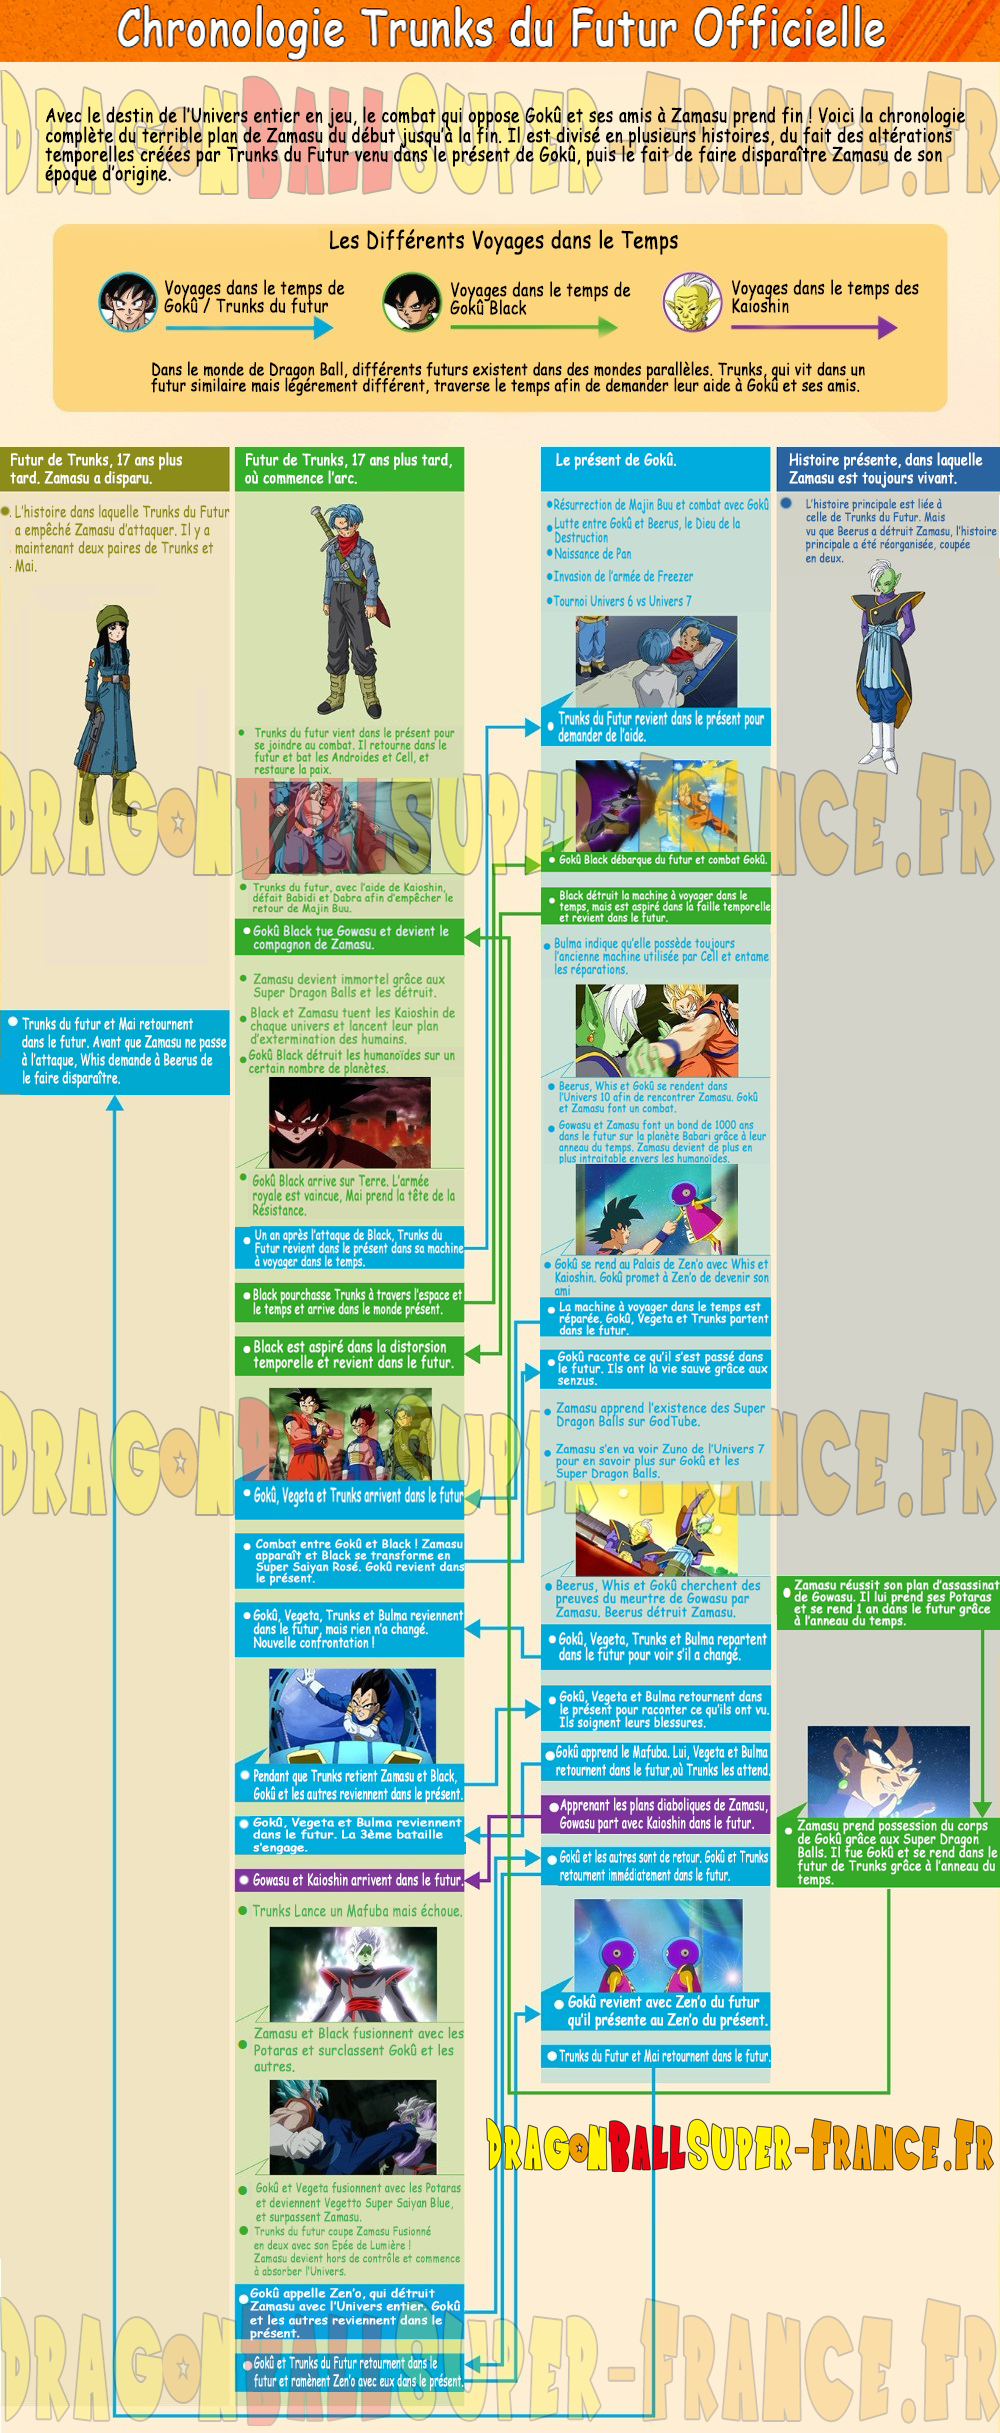 Le site officiel de dragon ball super met jour la chronologie finale de l arc mirai trunks - Dragon ball z site officiel ...